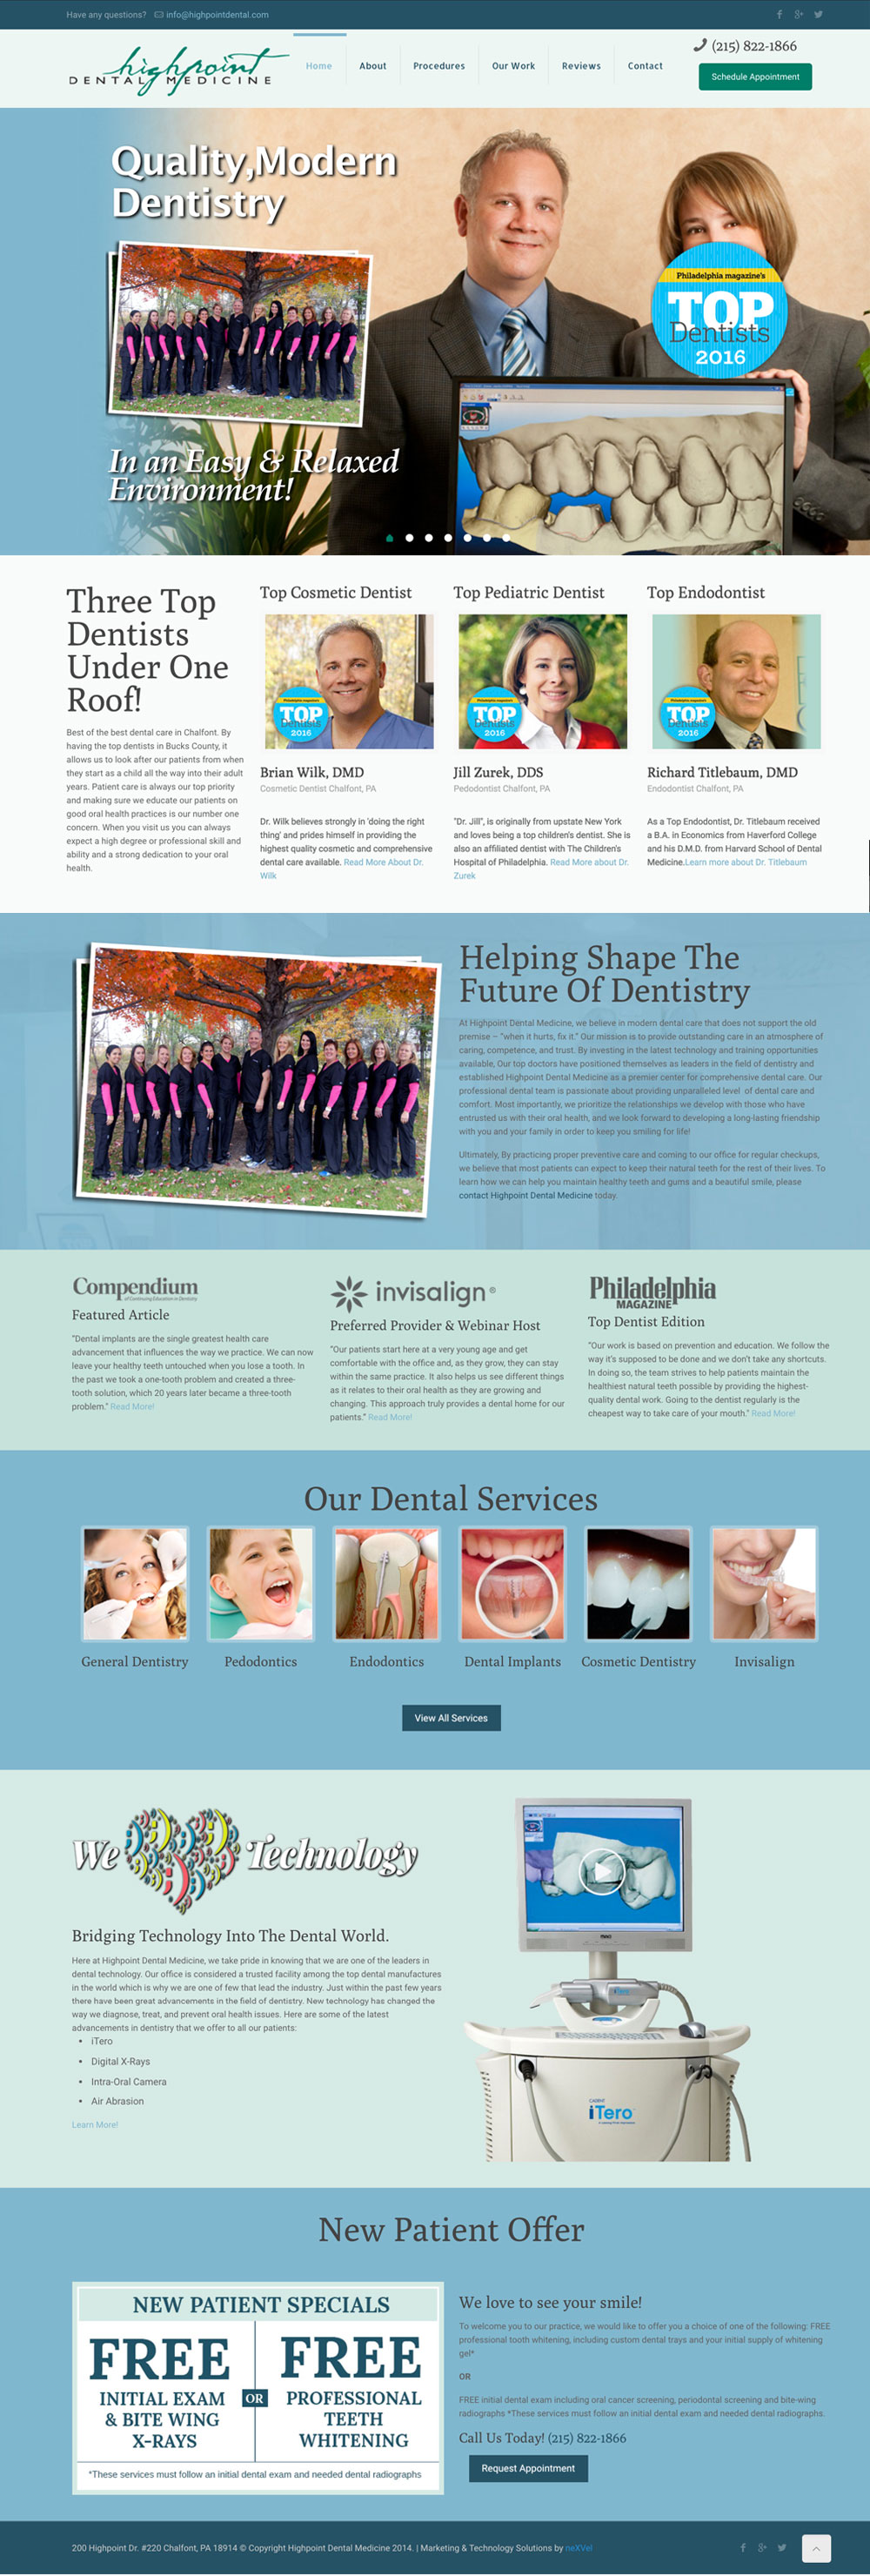 Highpoint Dental Web Design Philadelphia